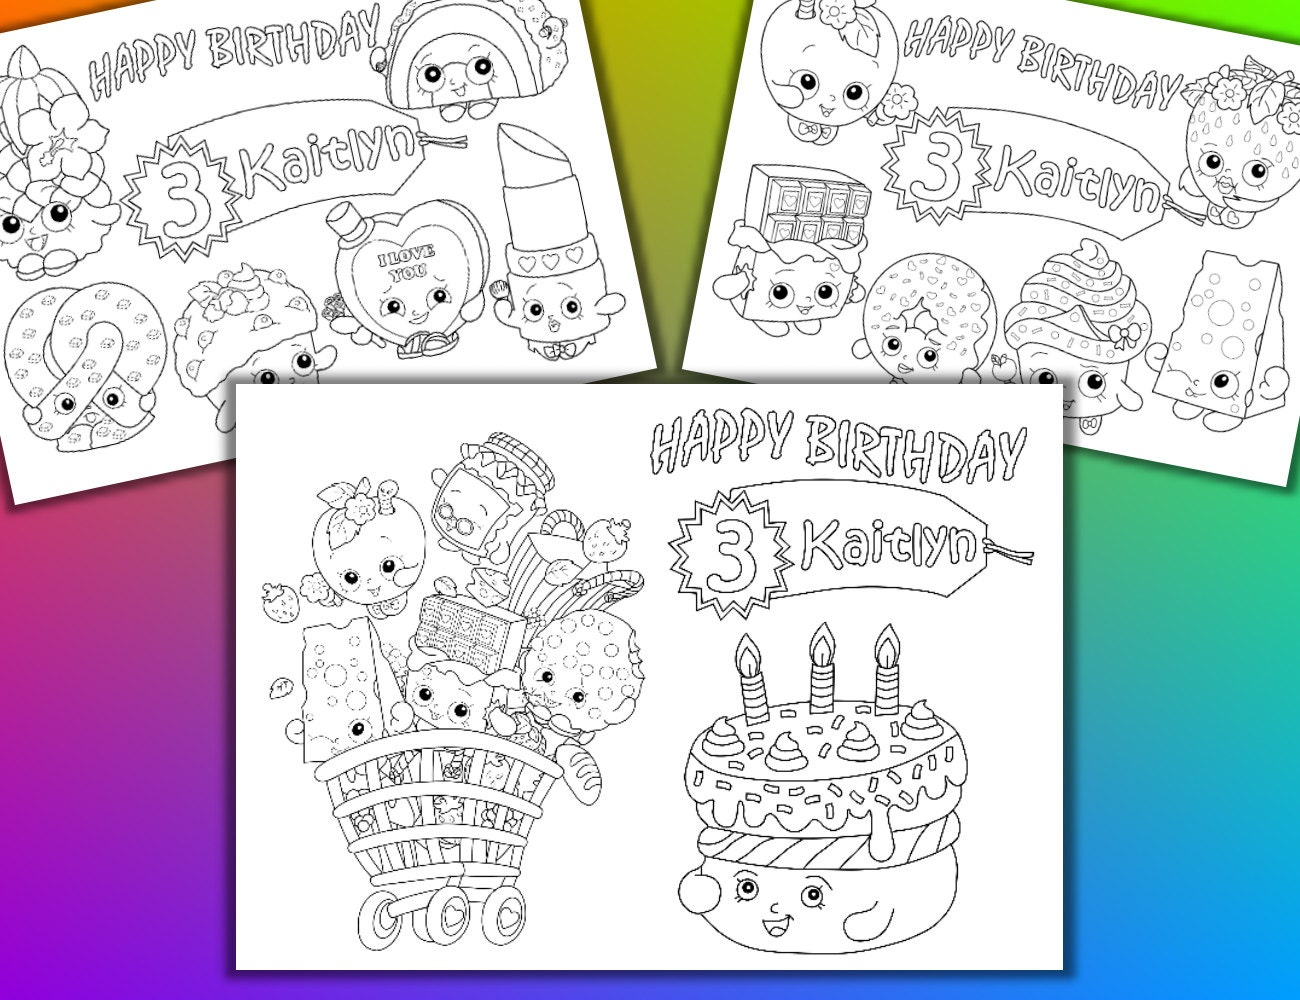 Coloring In Pages Shopkins.  zoom Shopkins Birthday Party Favor coloring pages PDF